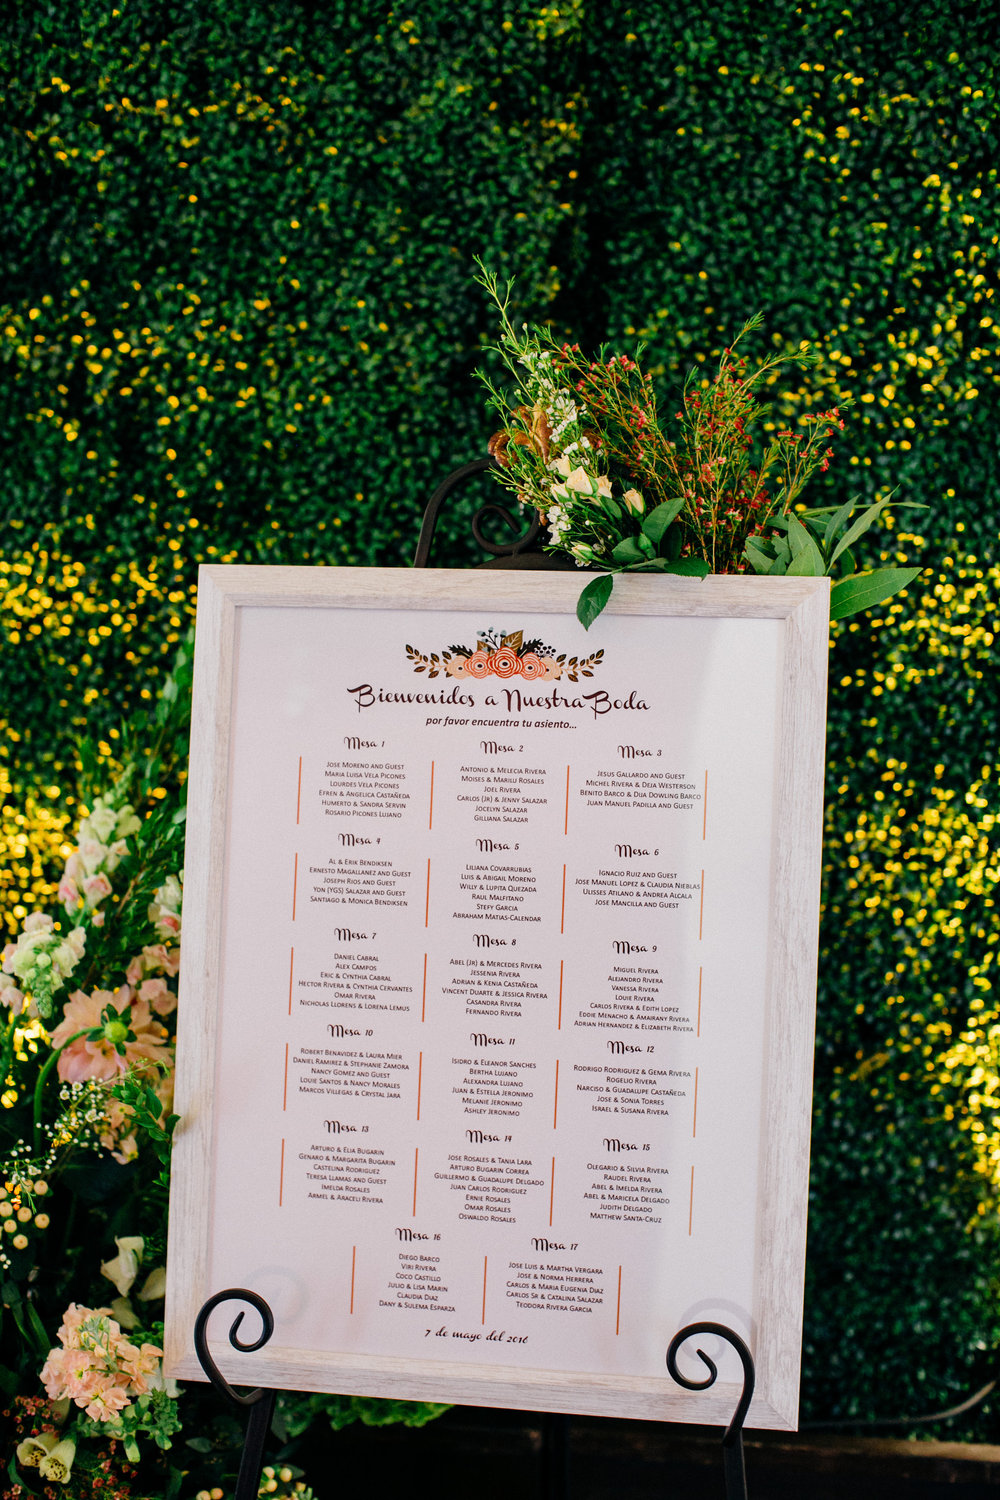 9cfc4-elegant-country-charm-ranch-wedding-seating-chart-flanked-by-flowers.jpg